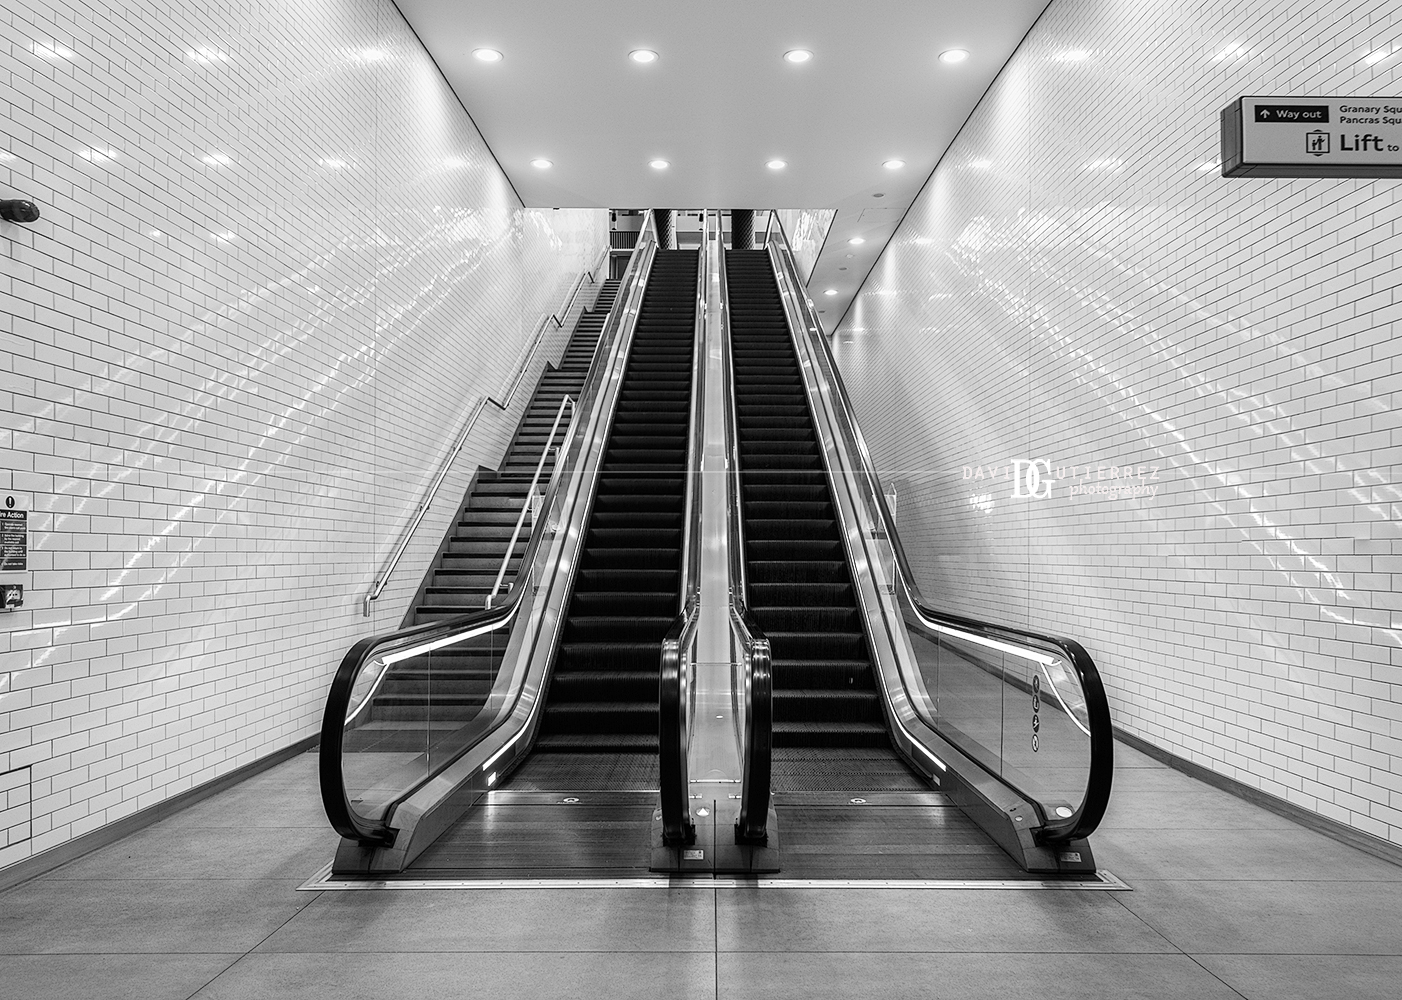 """Escalation II"" King's Cross St. Pancras Station, London, United Kingdom by David Gutierrez Photography, London Photographer"